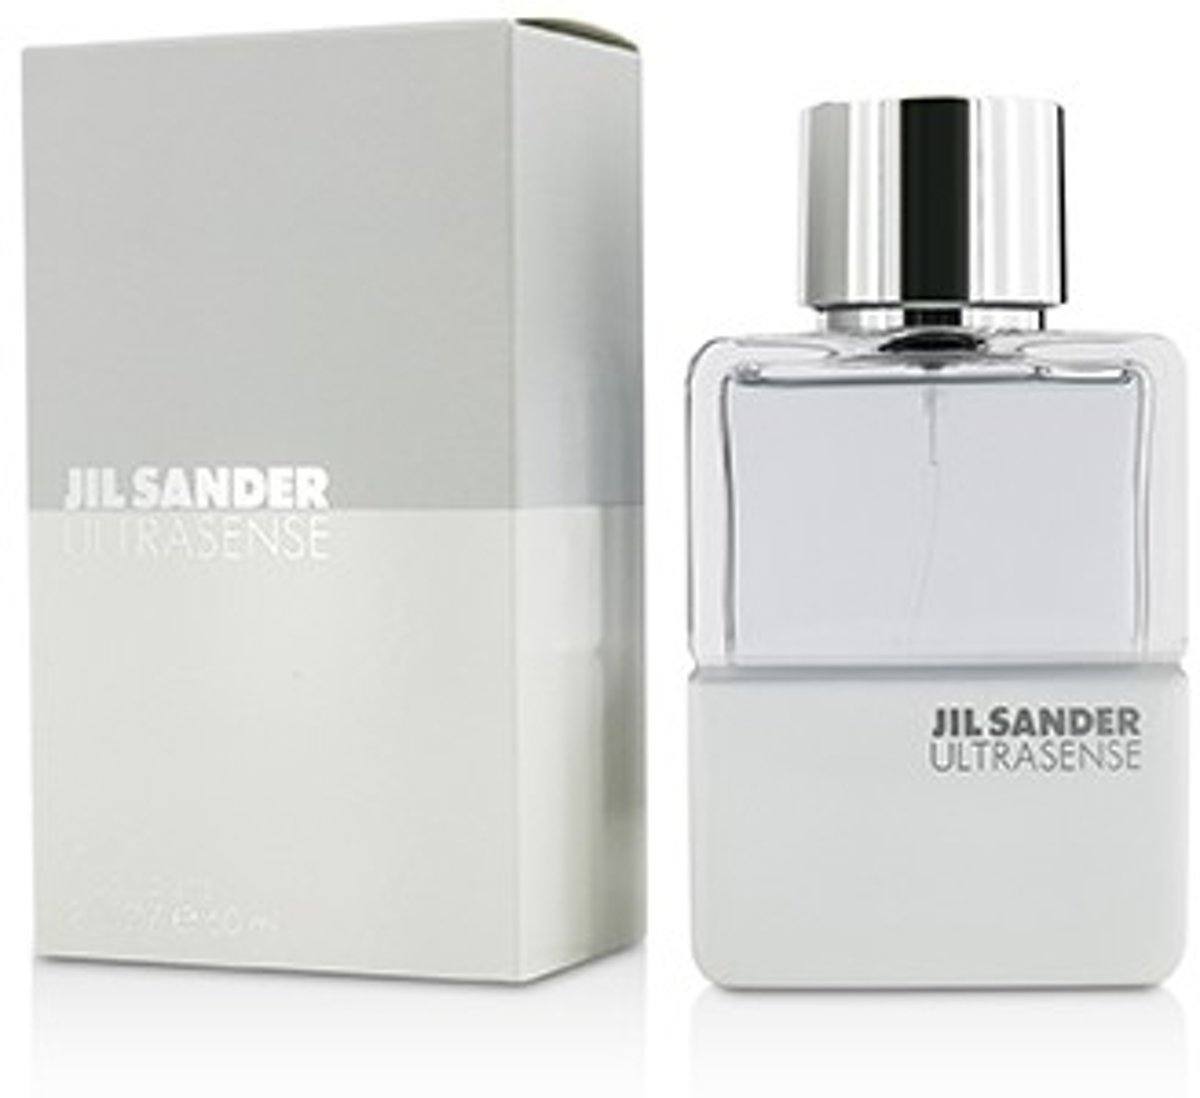 Jil sander ultra sense white edt 60 ml spray